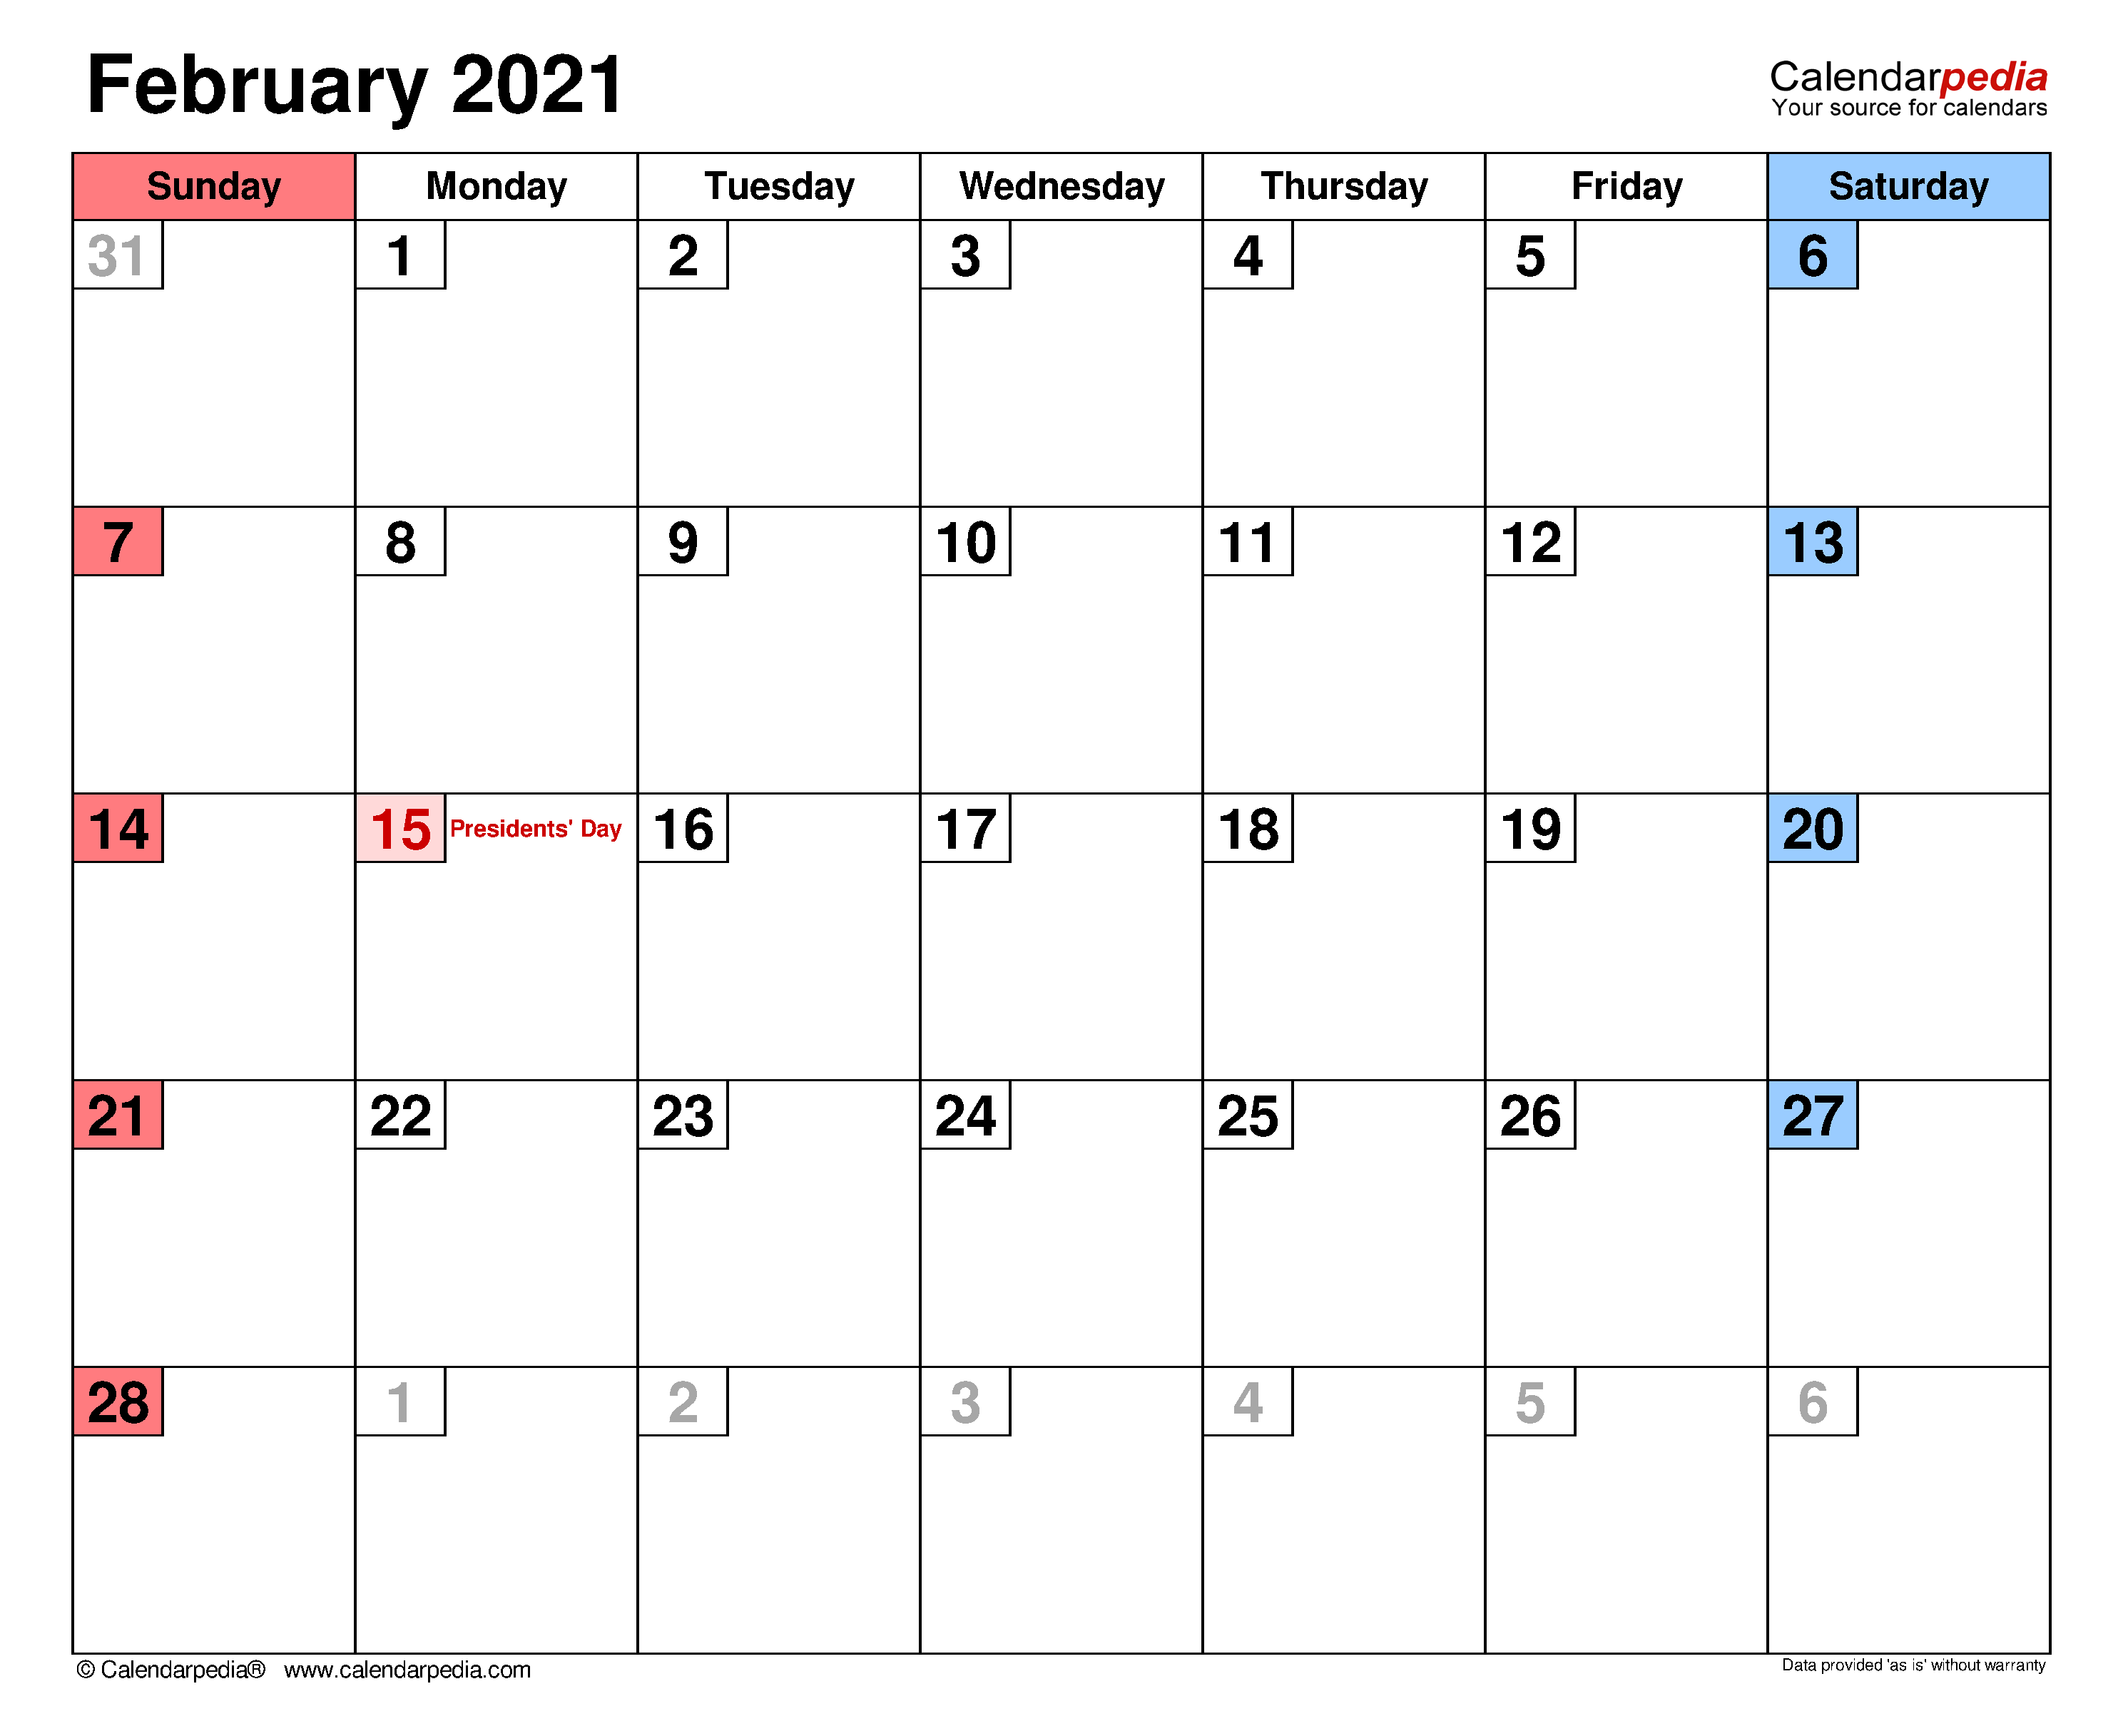 February 2021 Calendar | Templates For Word, Excel And Pdf